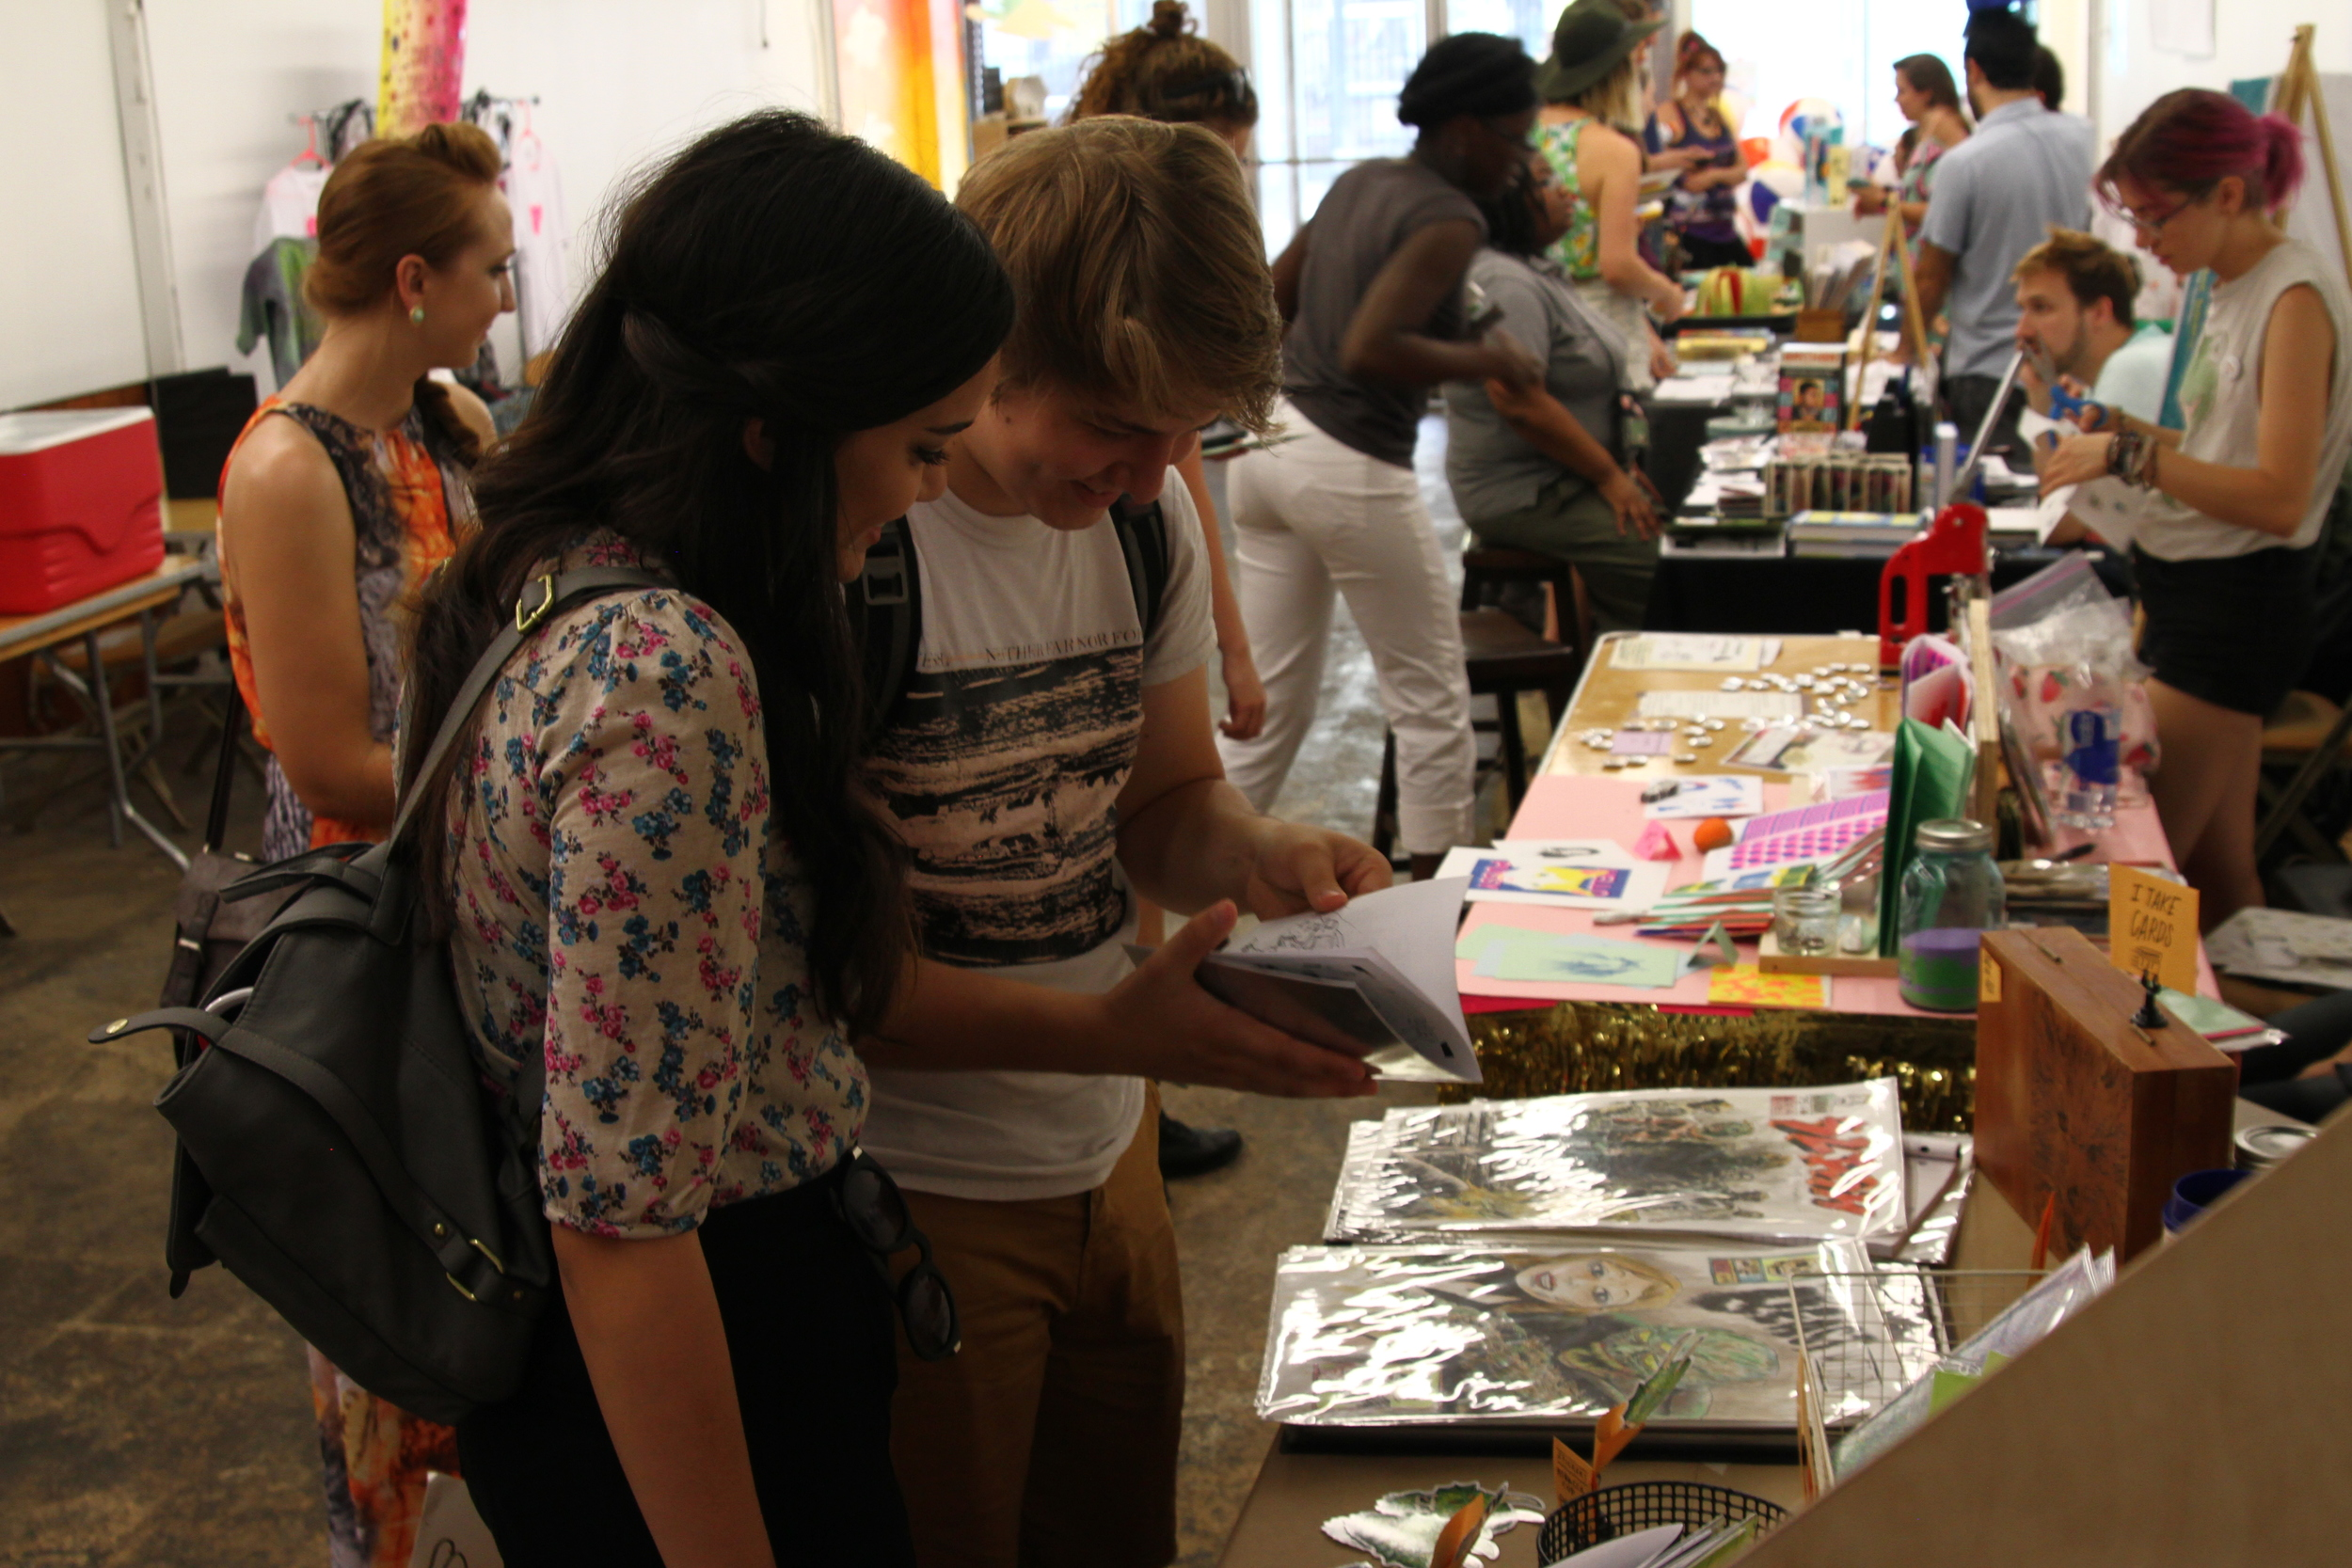 001 - ZineFest (Highlights).JPG